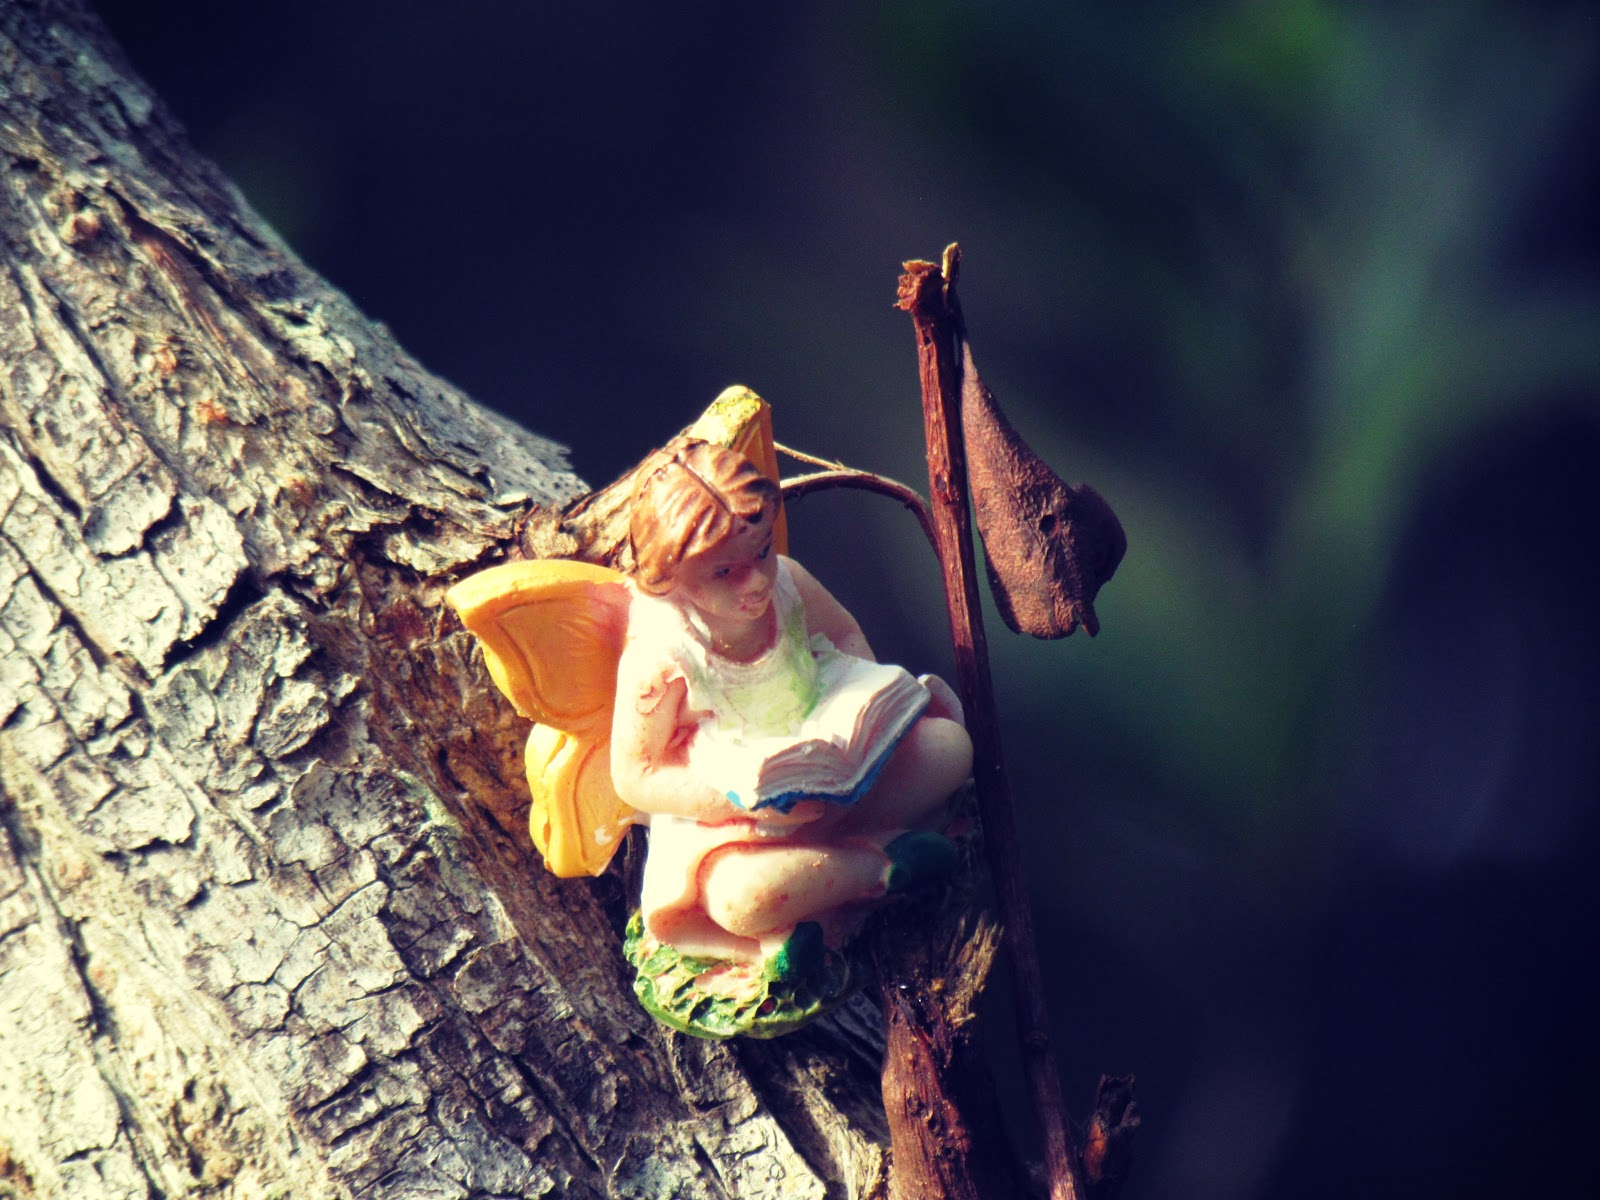 A fairy winged creature in the woods reading a book of fairy tales and Alice in Wonderland adventures + nature books